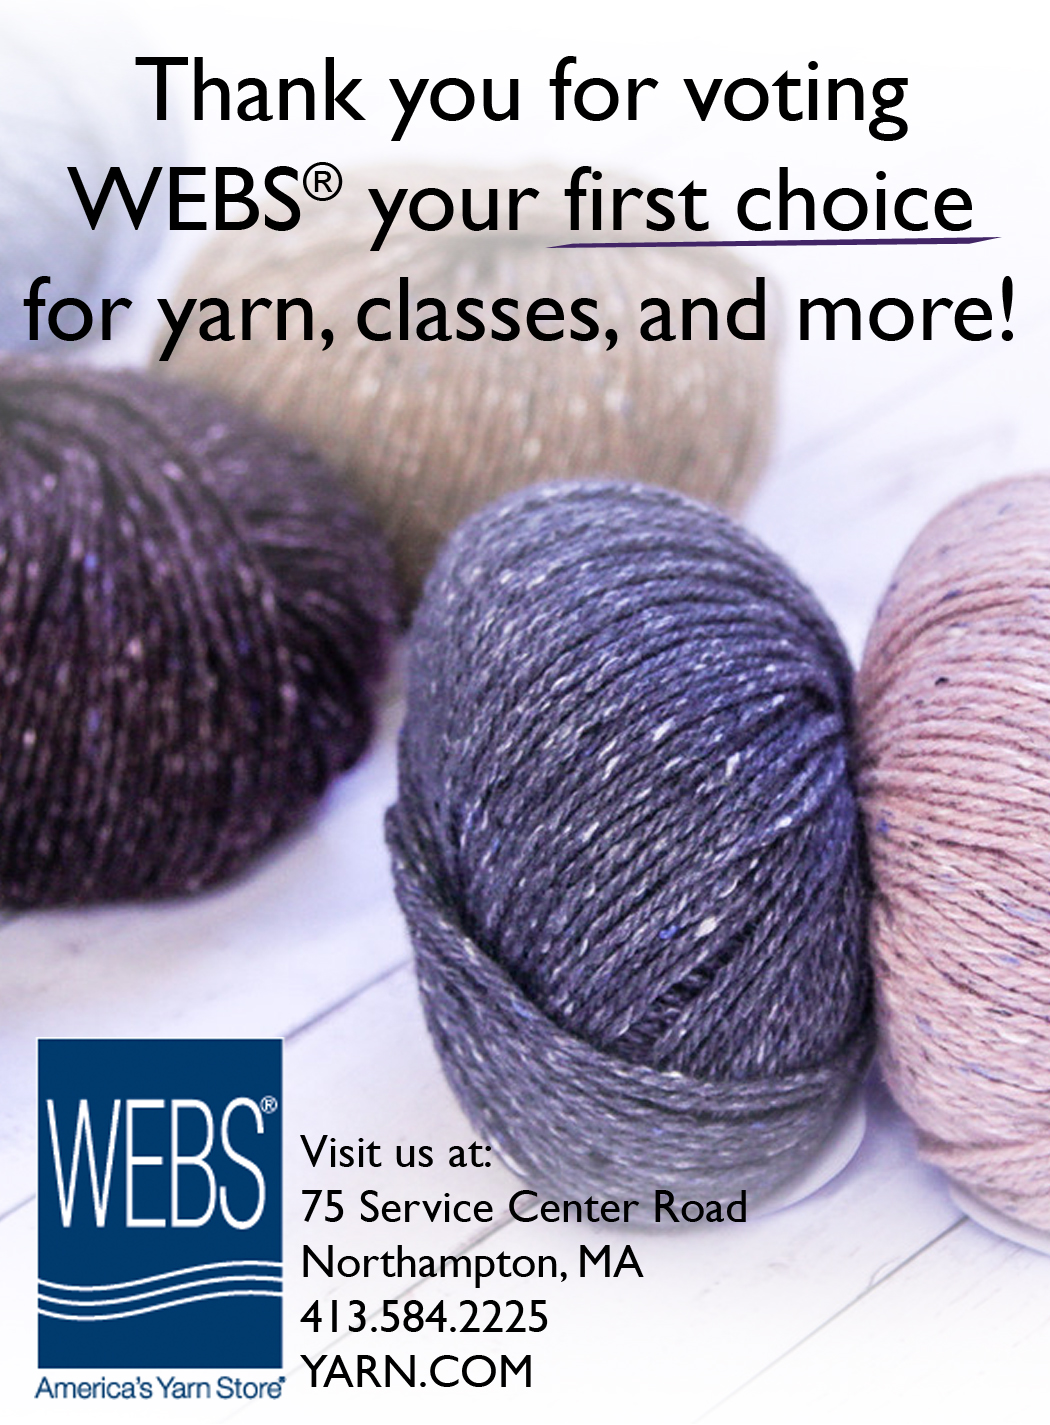 WEBS is in first place for 2016 in the Daily Hampshire Gazette's annual Reader's Poll. Read more on the WEBS Blog at blog.yarn.com